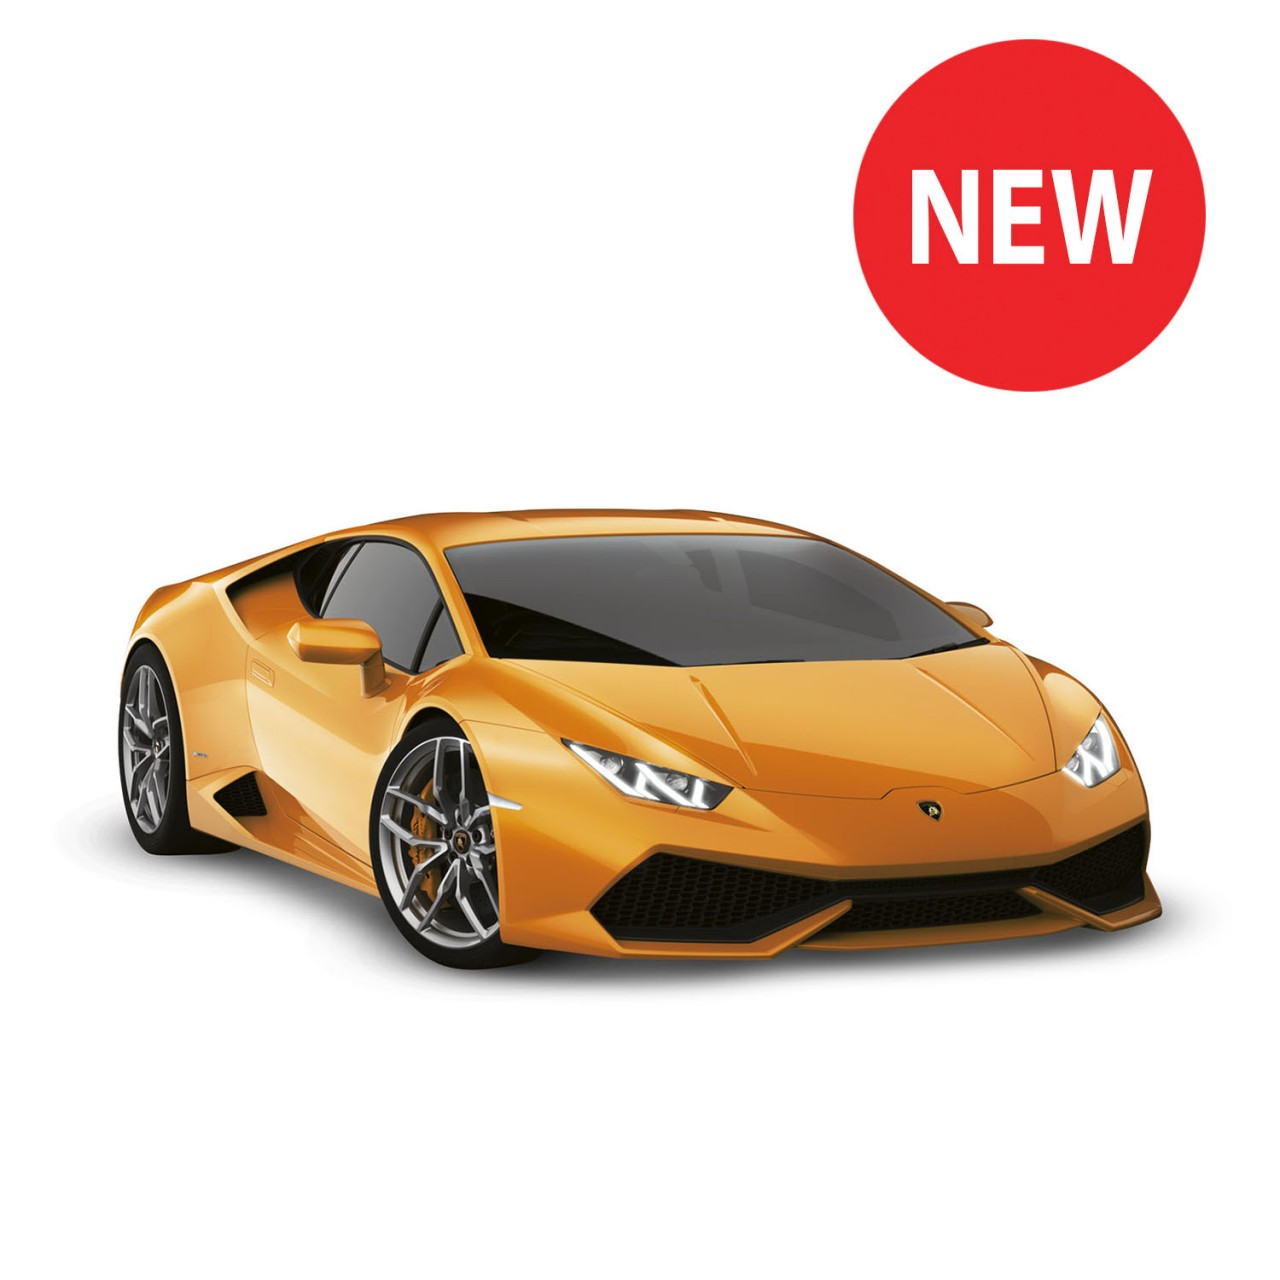 lamborghini huracán model car 1:10 scale full kit | modelspace